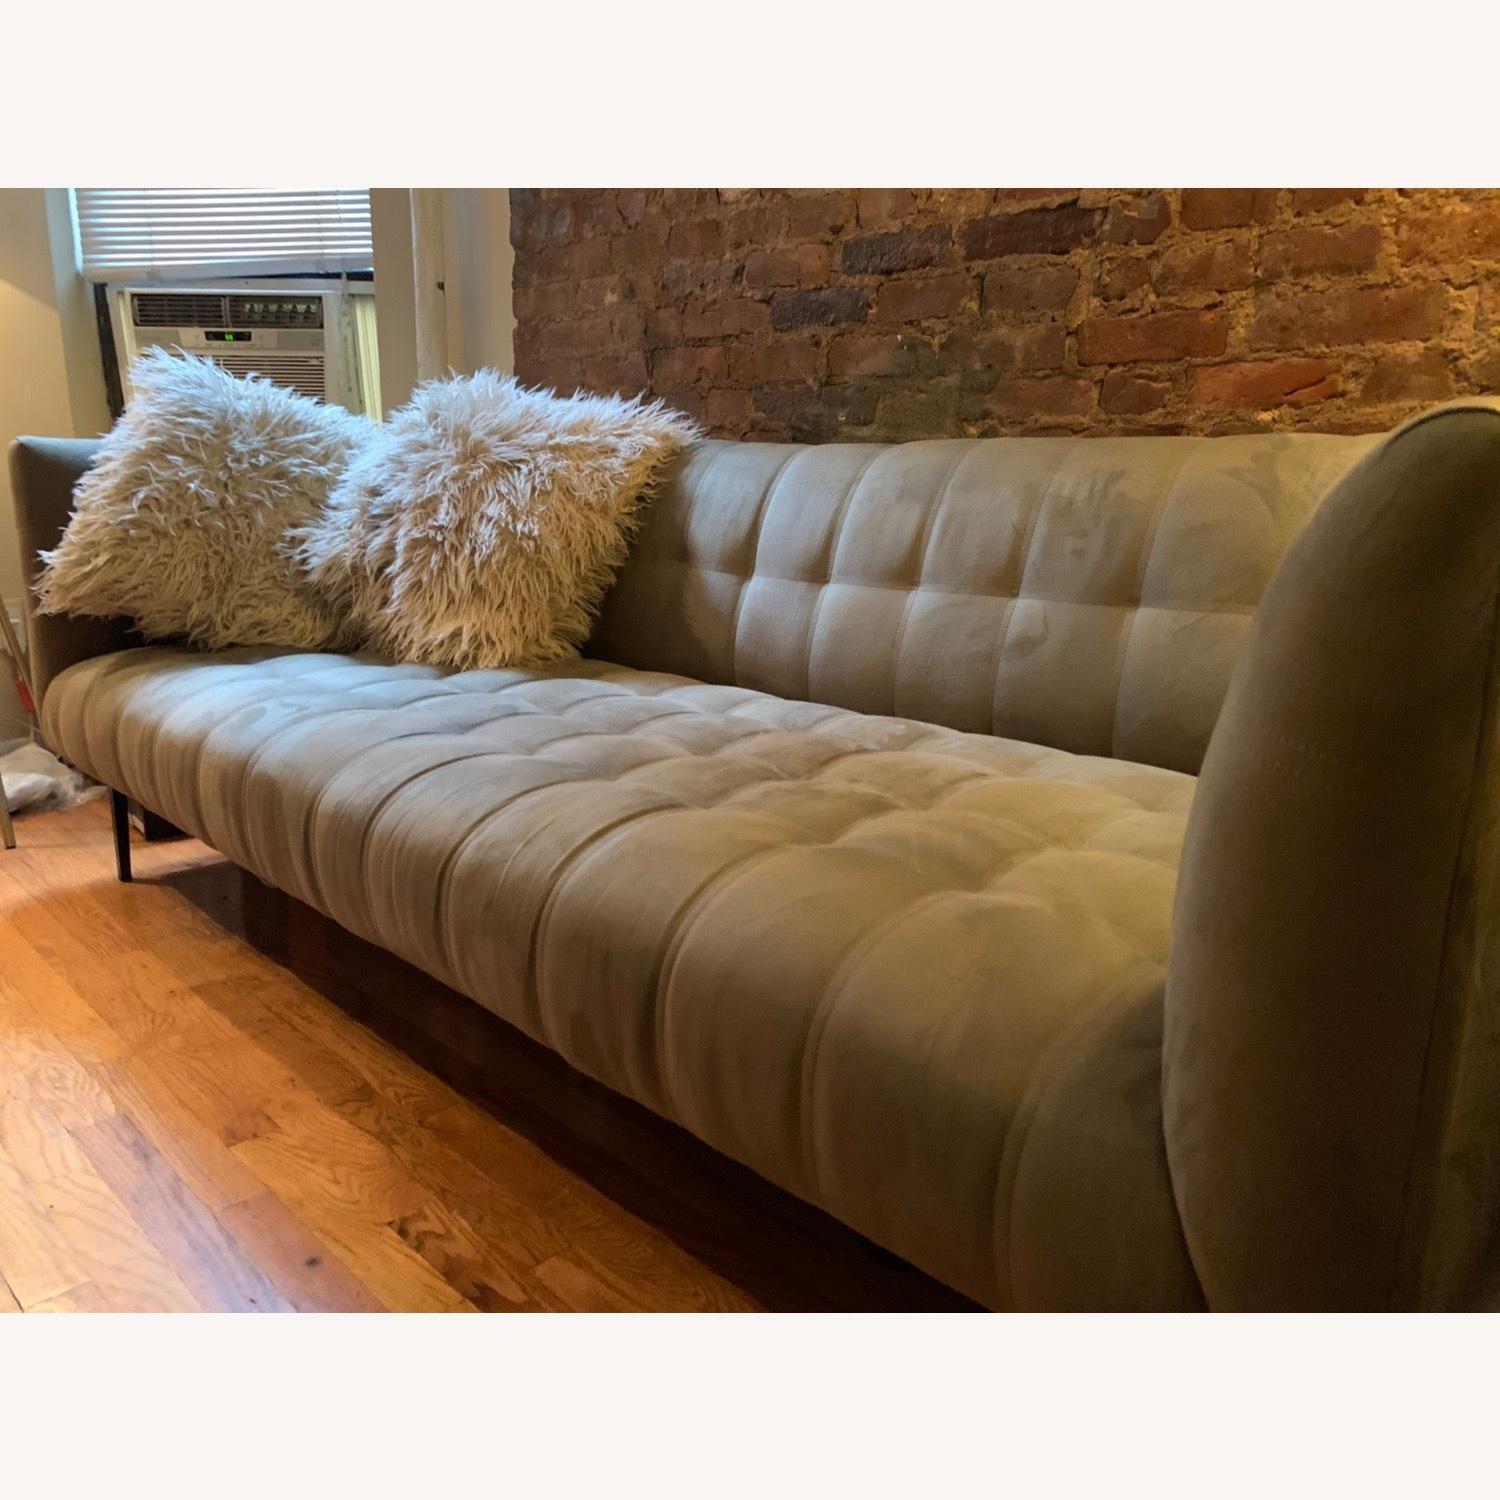 ABC Carpet & Home Microsuede Couch - image-1